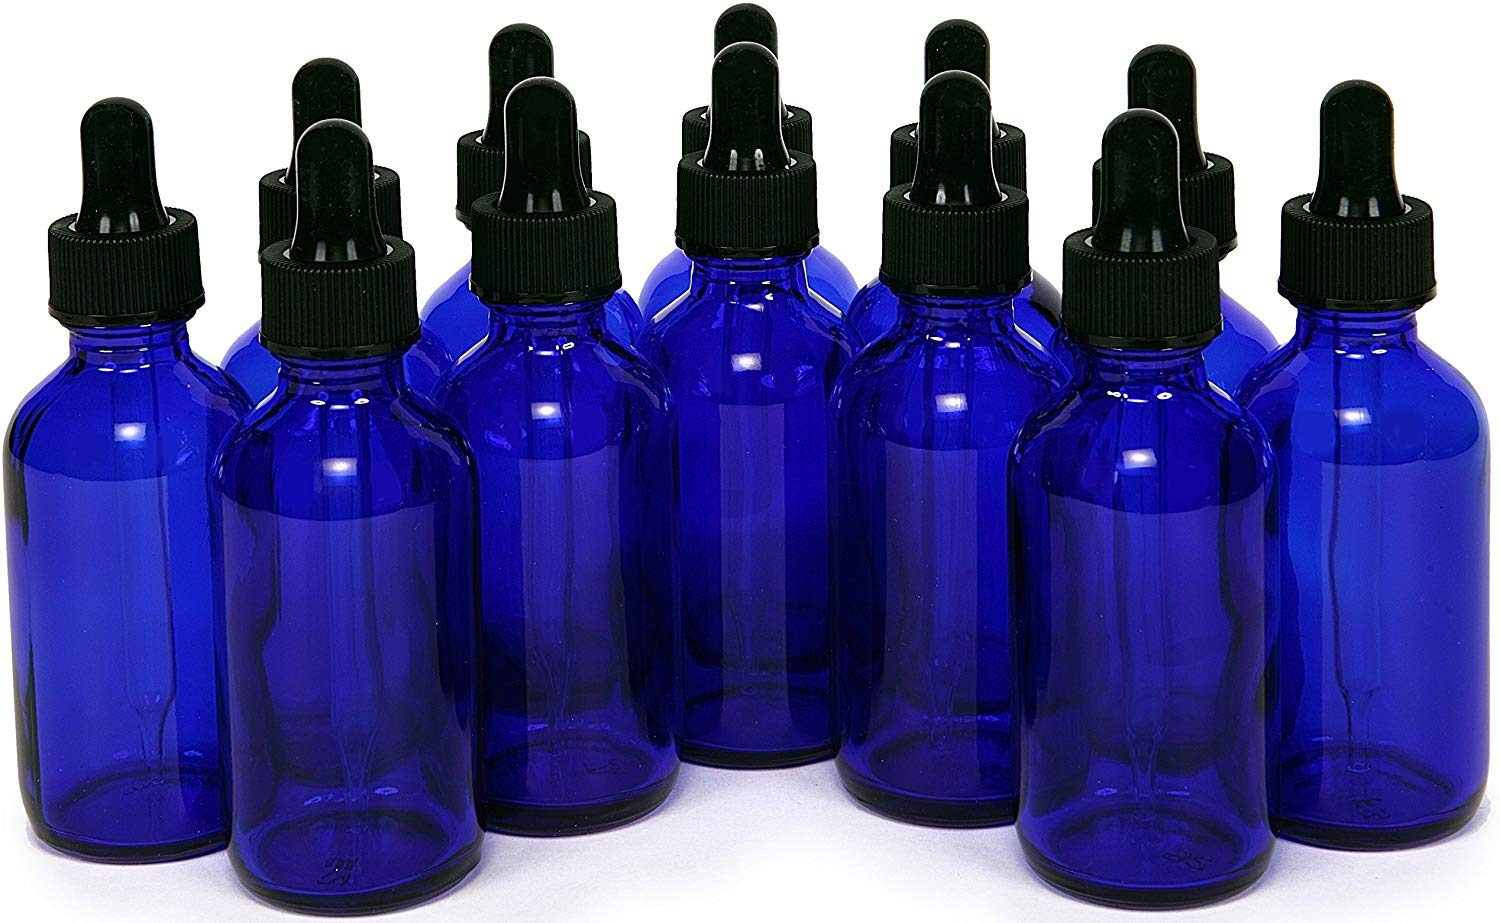 Vivaplex 2oz Glass Refill Bottles, Glass Eye Droppers - Set of 12 - Cobalt Blue (VCD2-12)